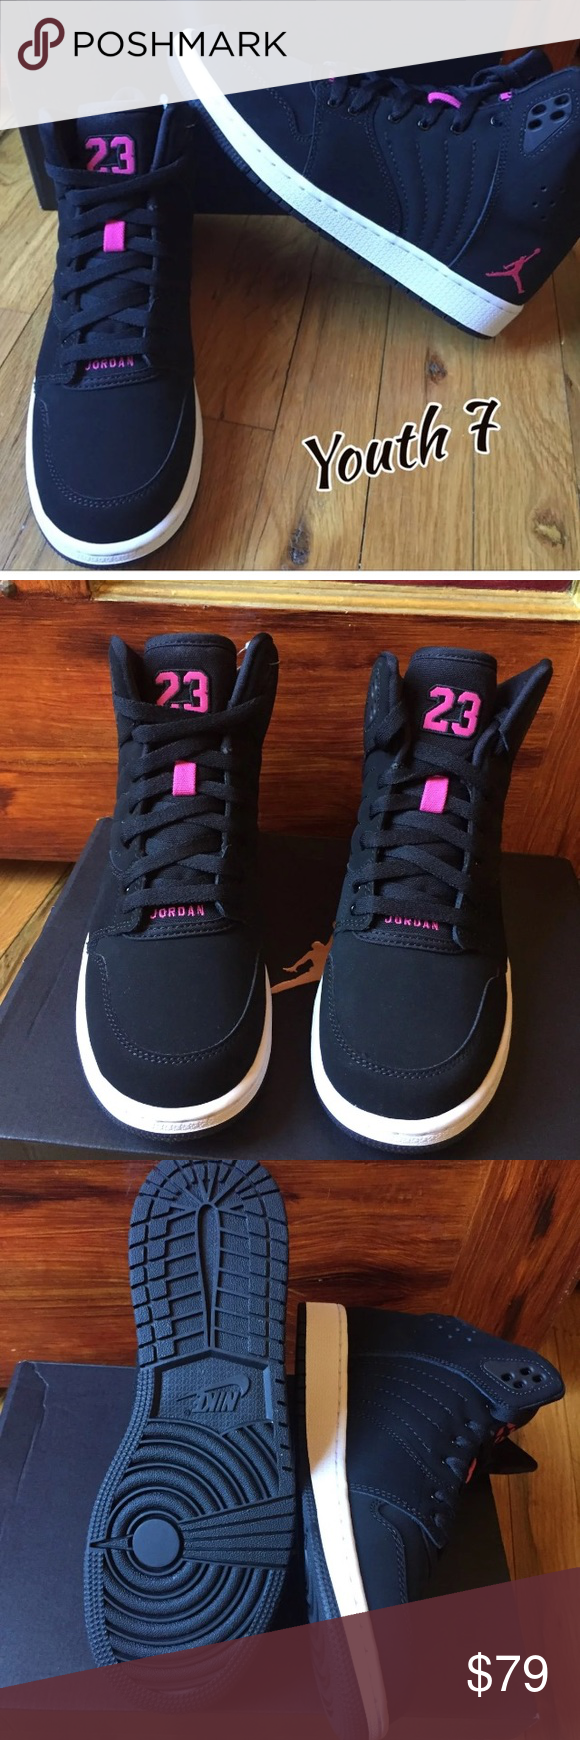 d6745e8ee4e Youth Jordans new size 7 New in Box Youth big kids